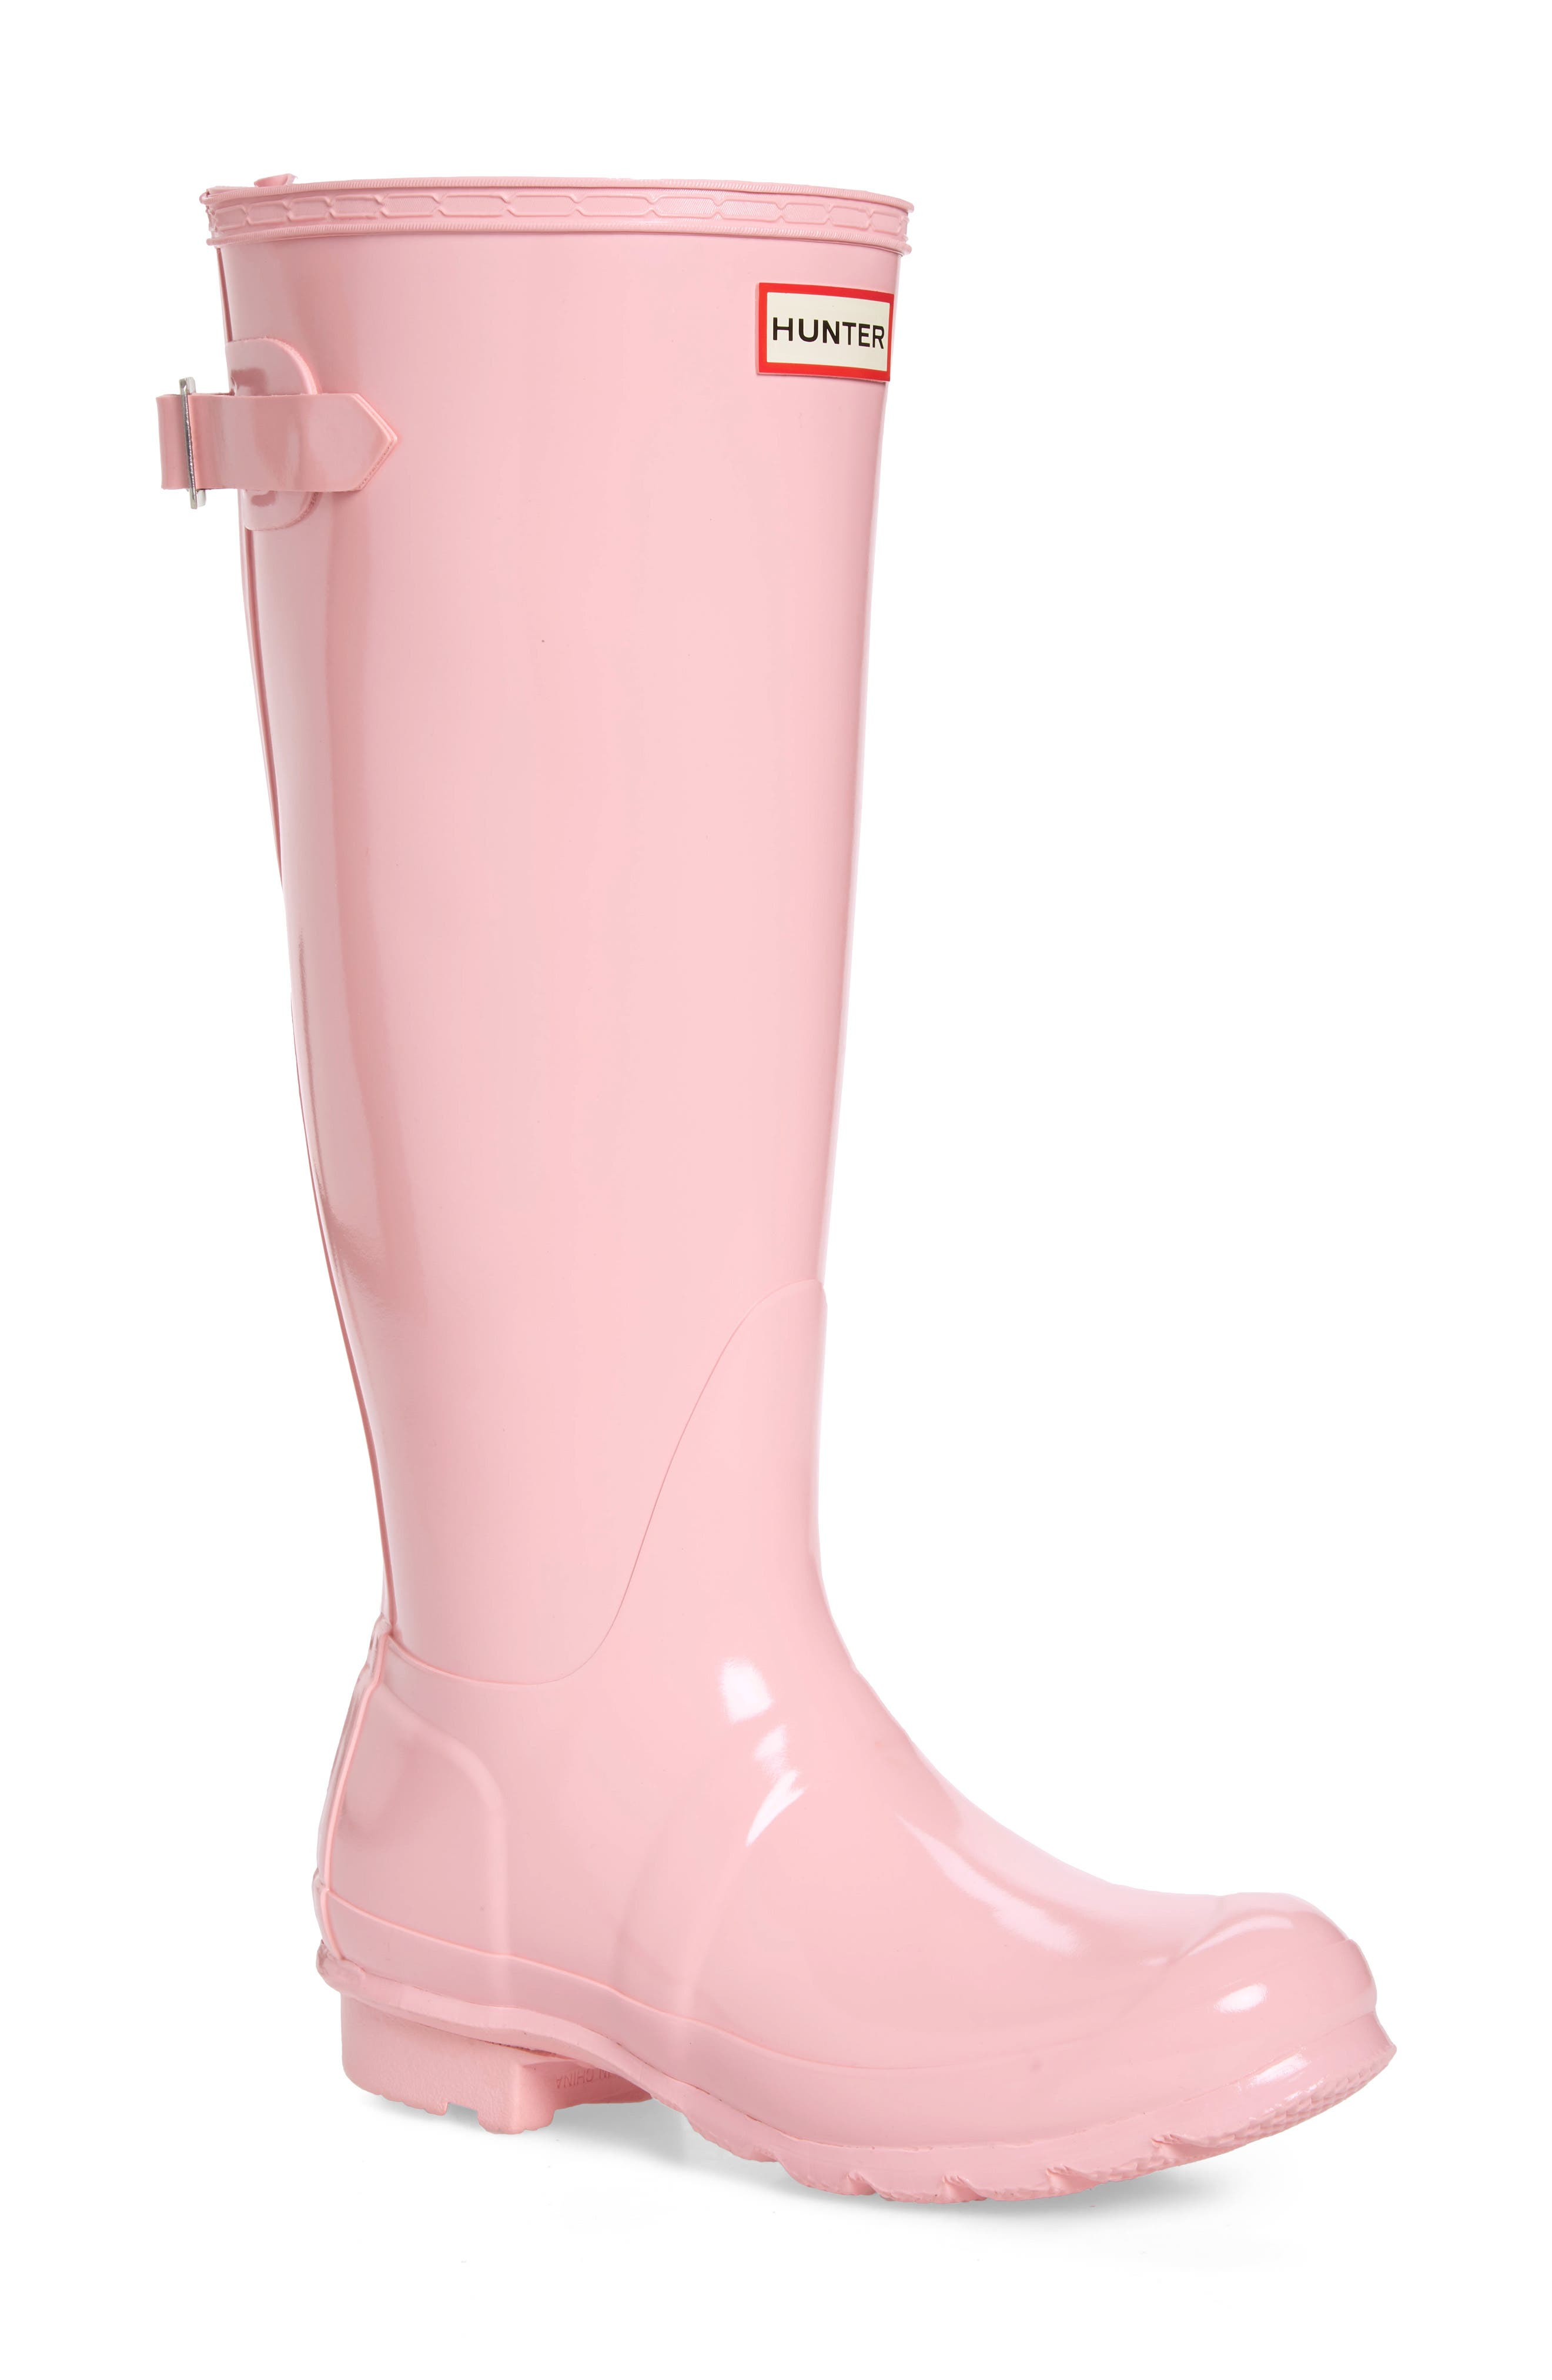 Adjustable Back Gloss Waterproof Rain Boot,                             Main thumbnail 1, color,                             CANDY FLOSS RUBBER